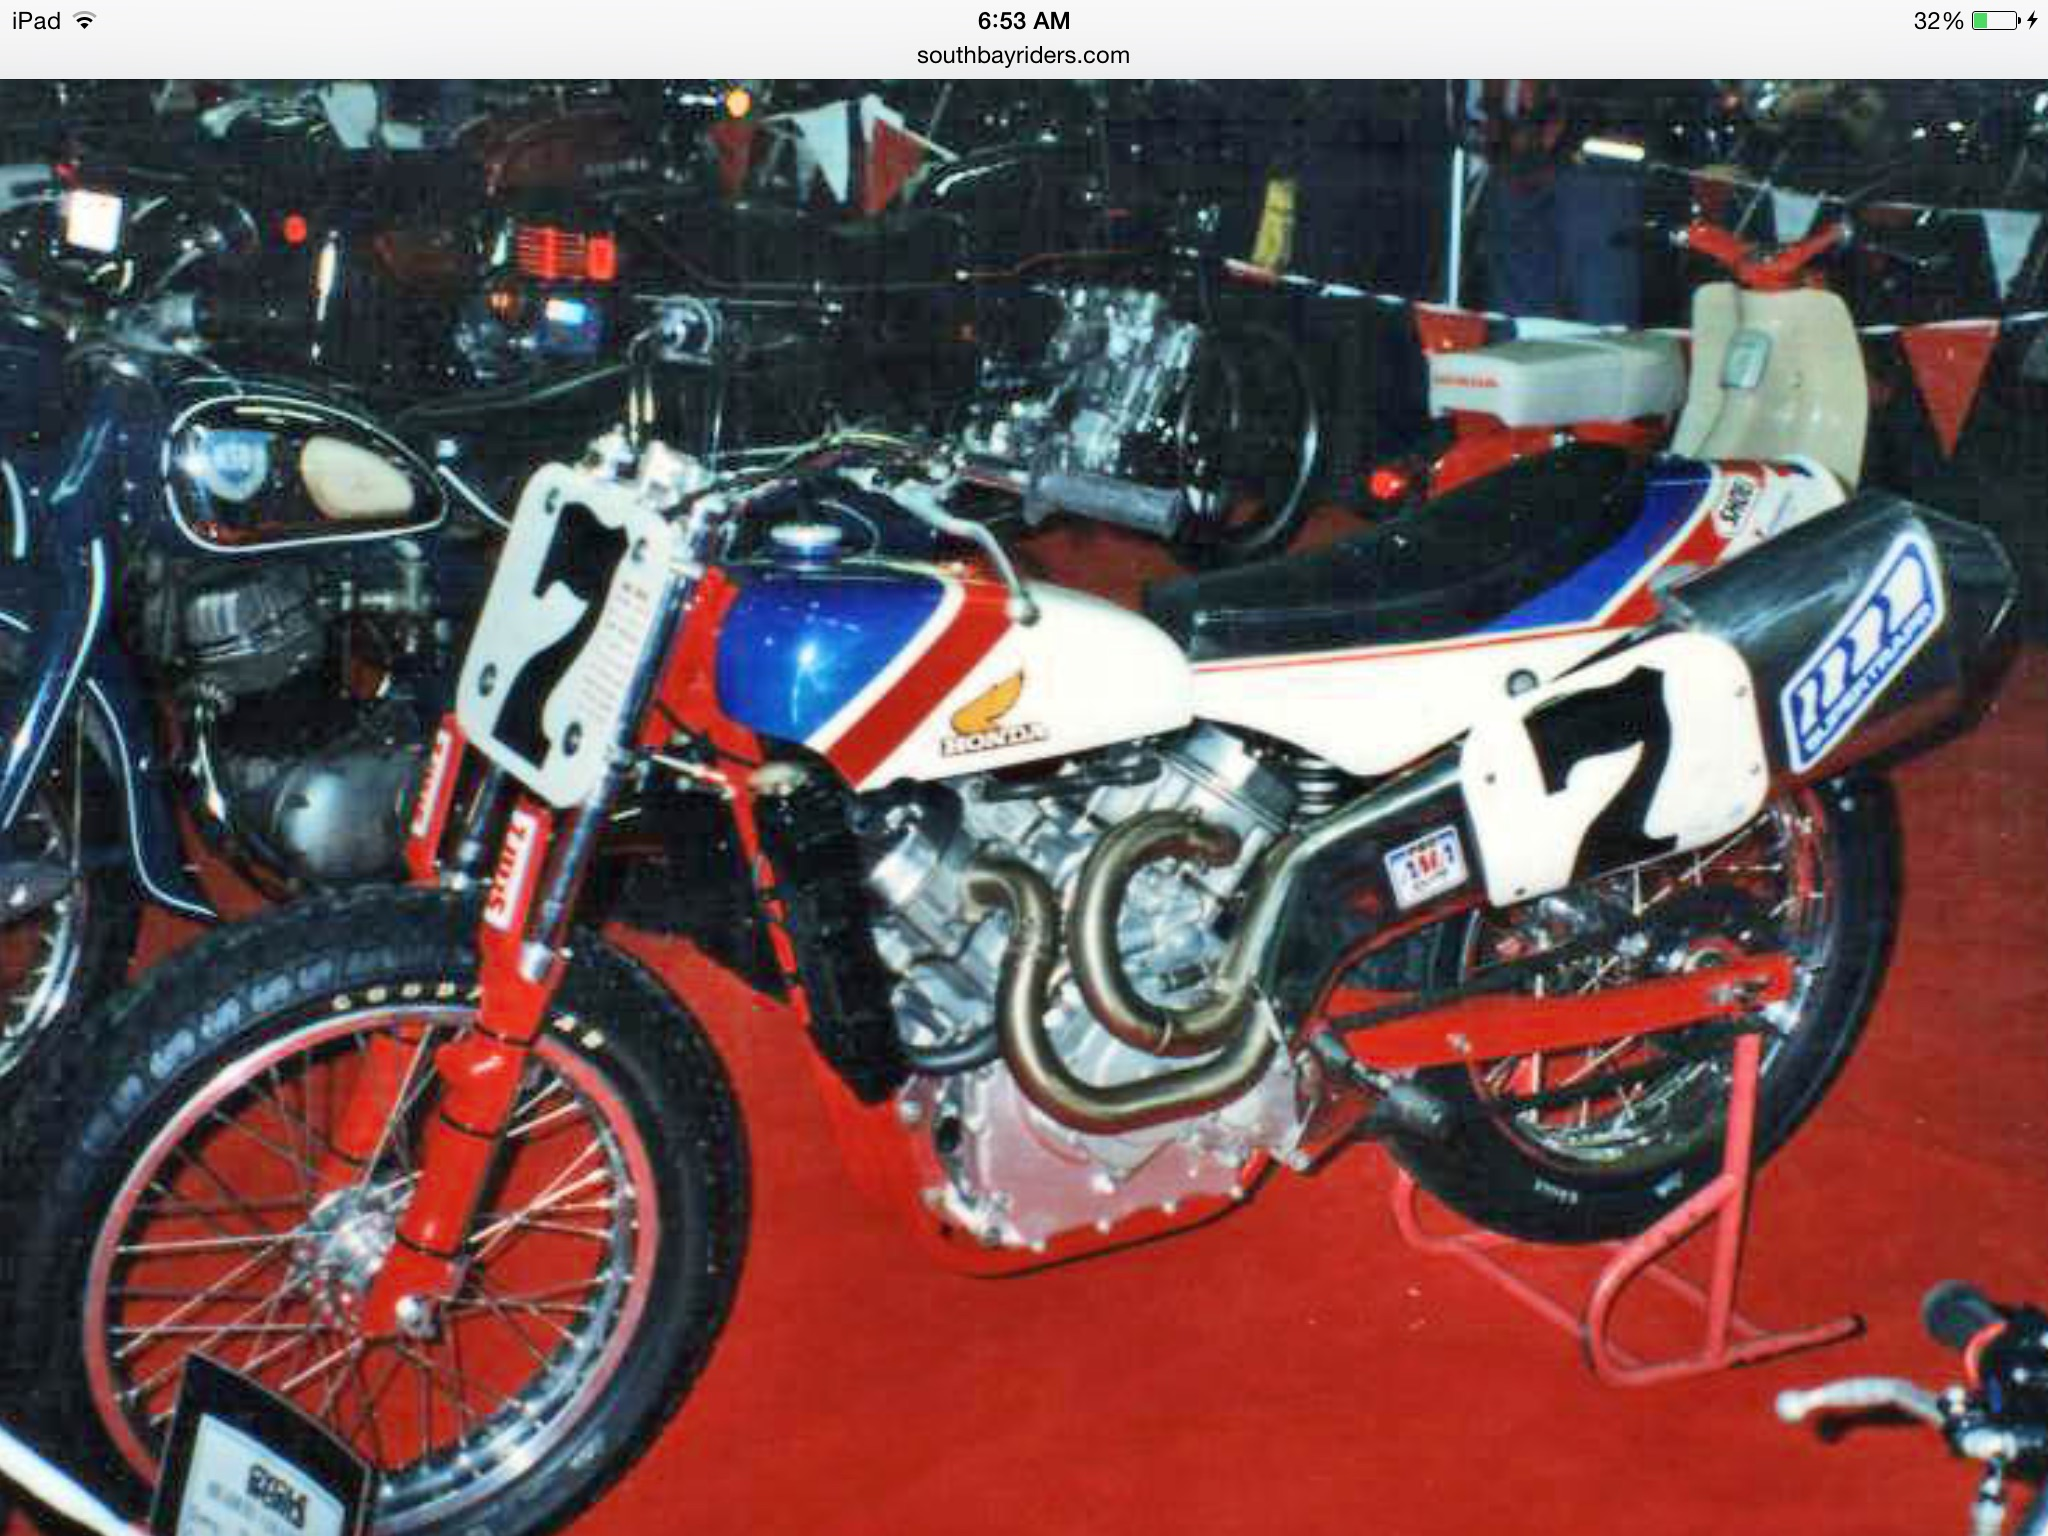 http://cx500forum.com/forum/attachments/general-discussion/19223d1420726522-cx500-racing-flattrack-fast-freddie-spencer-image.jpg